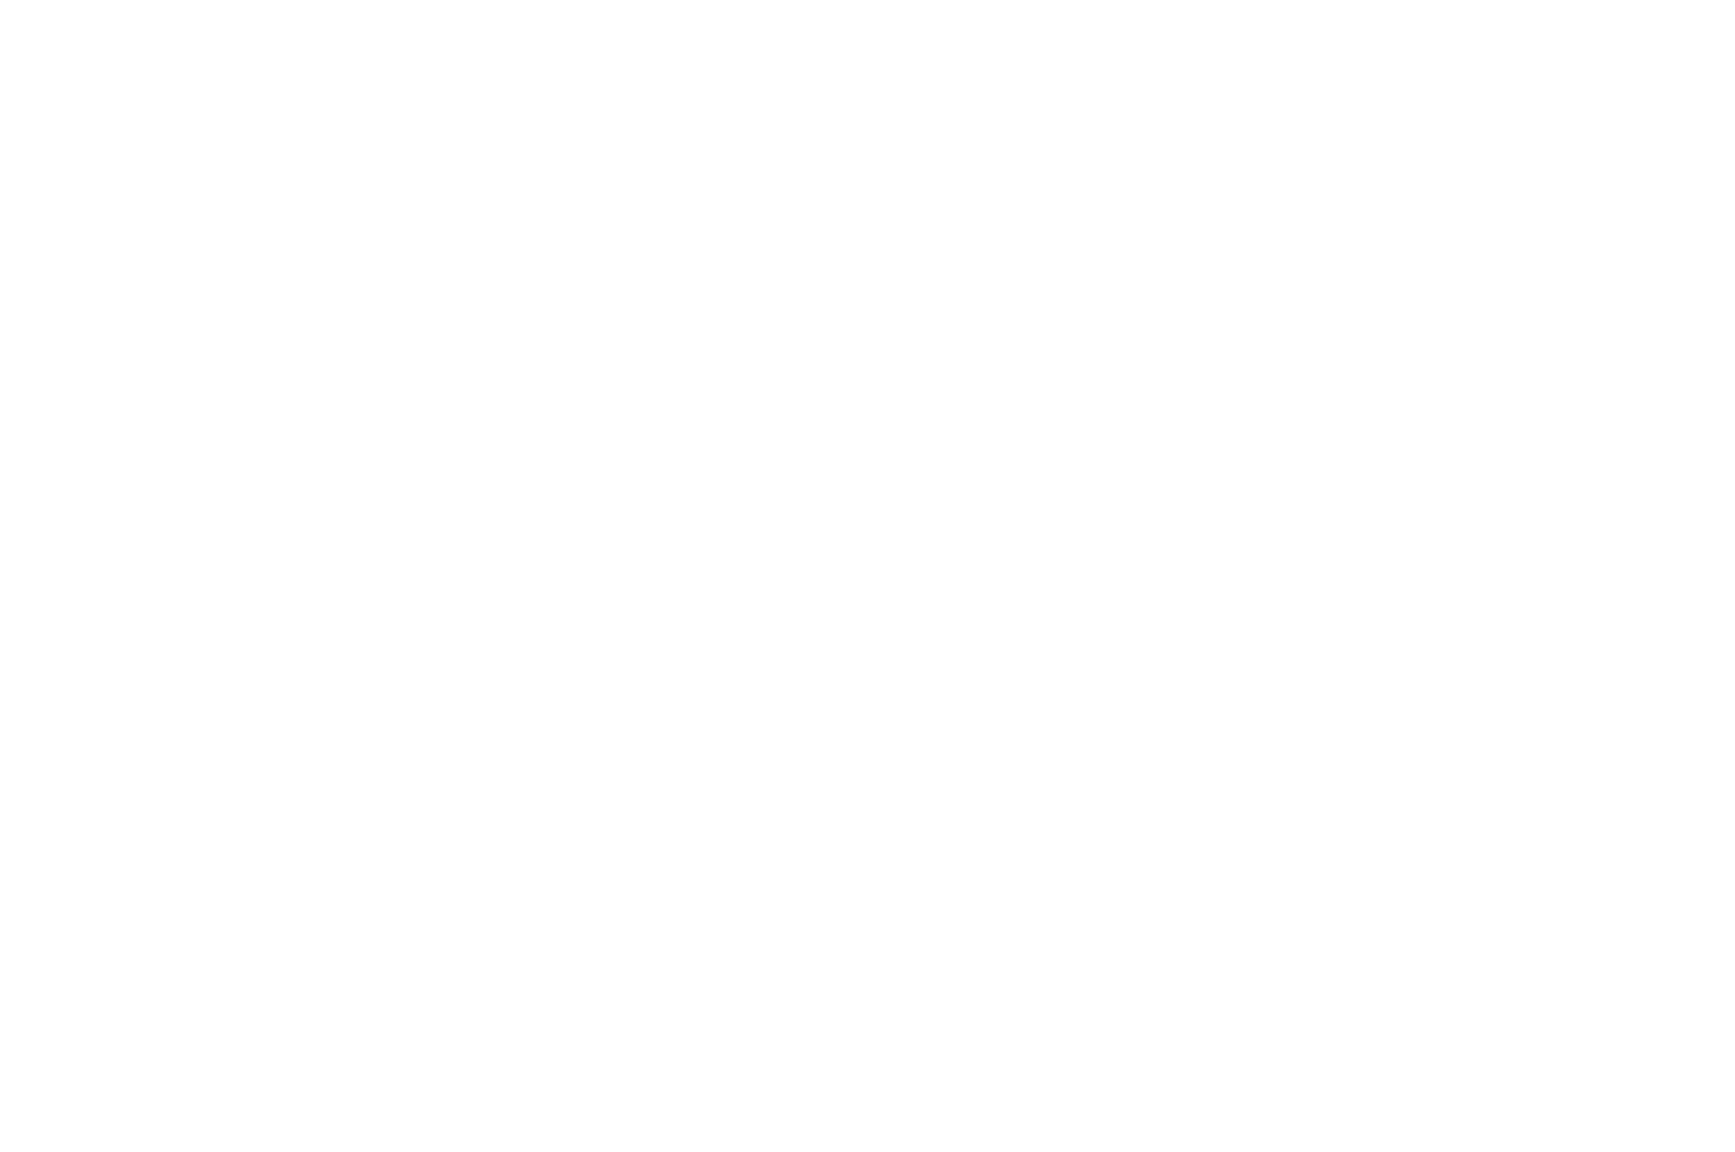 FINALIST - LOS ANGELES CINEFEST - 2017